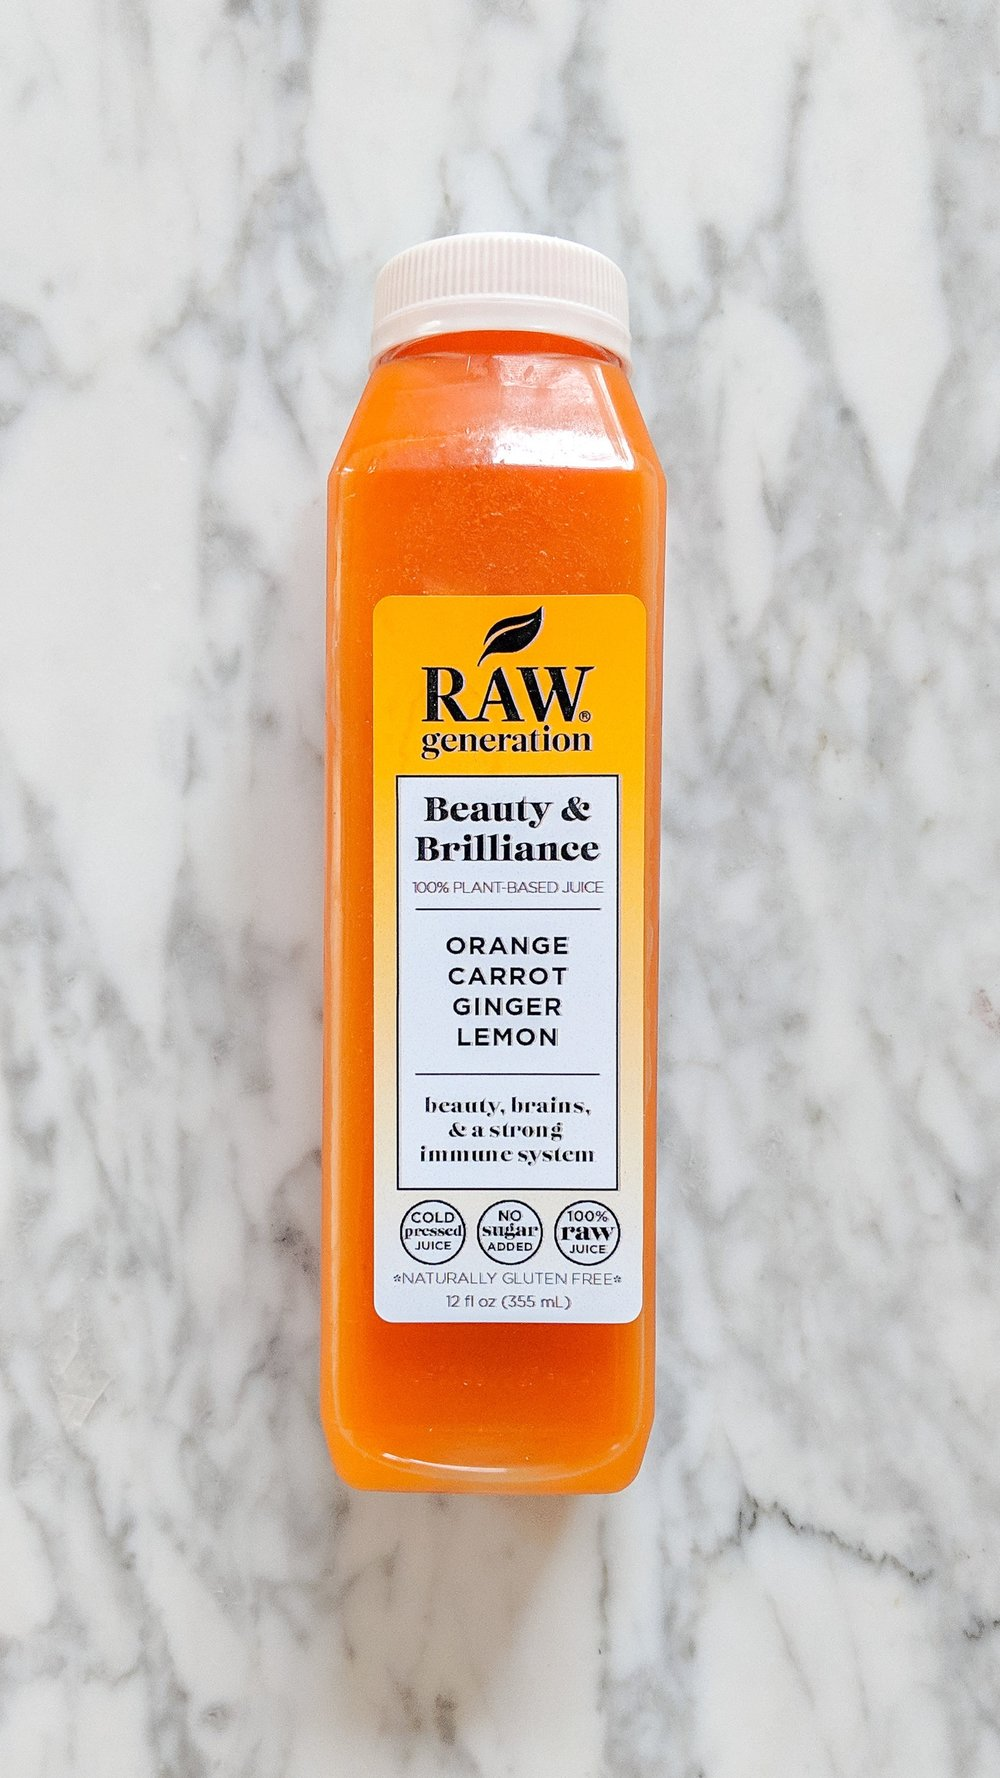 """""""Beauty & Brilliance"""" - INGREDIENTS: carrot, orange, lemon, ginger, filtered water.WHAT IT DOES: This juice is for """"beauty, brains, and a strong immune system."""" This juice I drank around dinner time and was one of the more filling and satisfying juices. I love anything with ginger and lemon too, it was delicious!"""